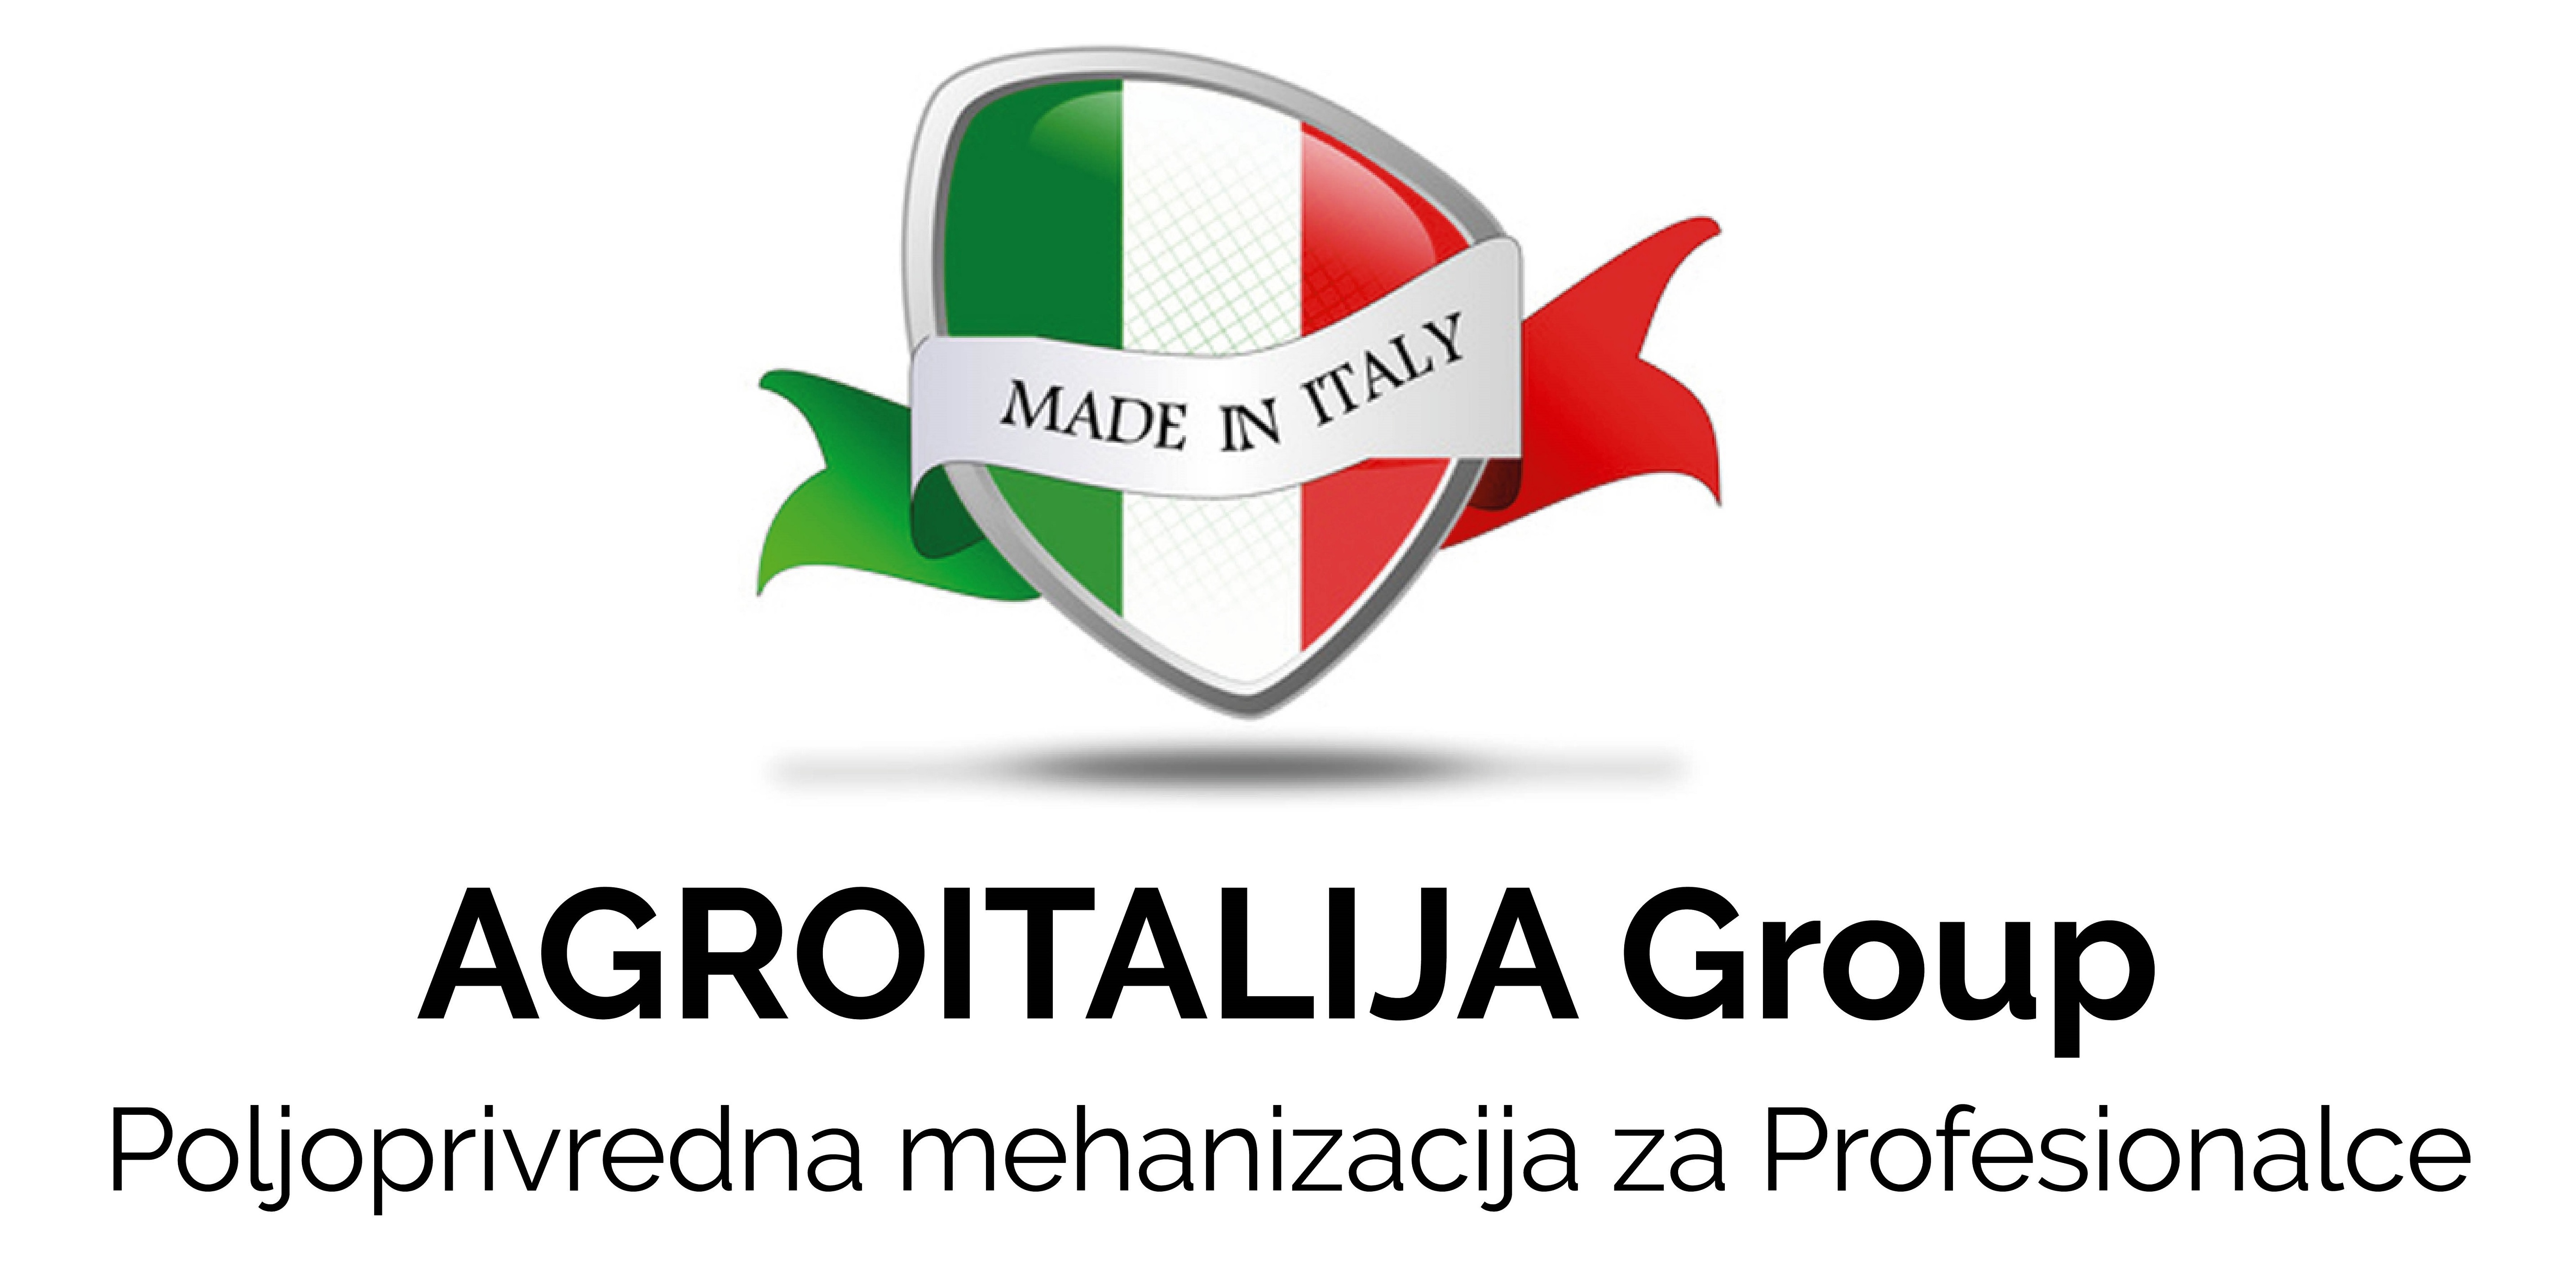 AGROITALIJA GROUP VP